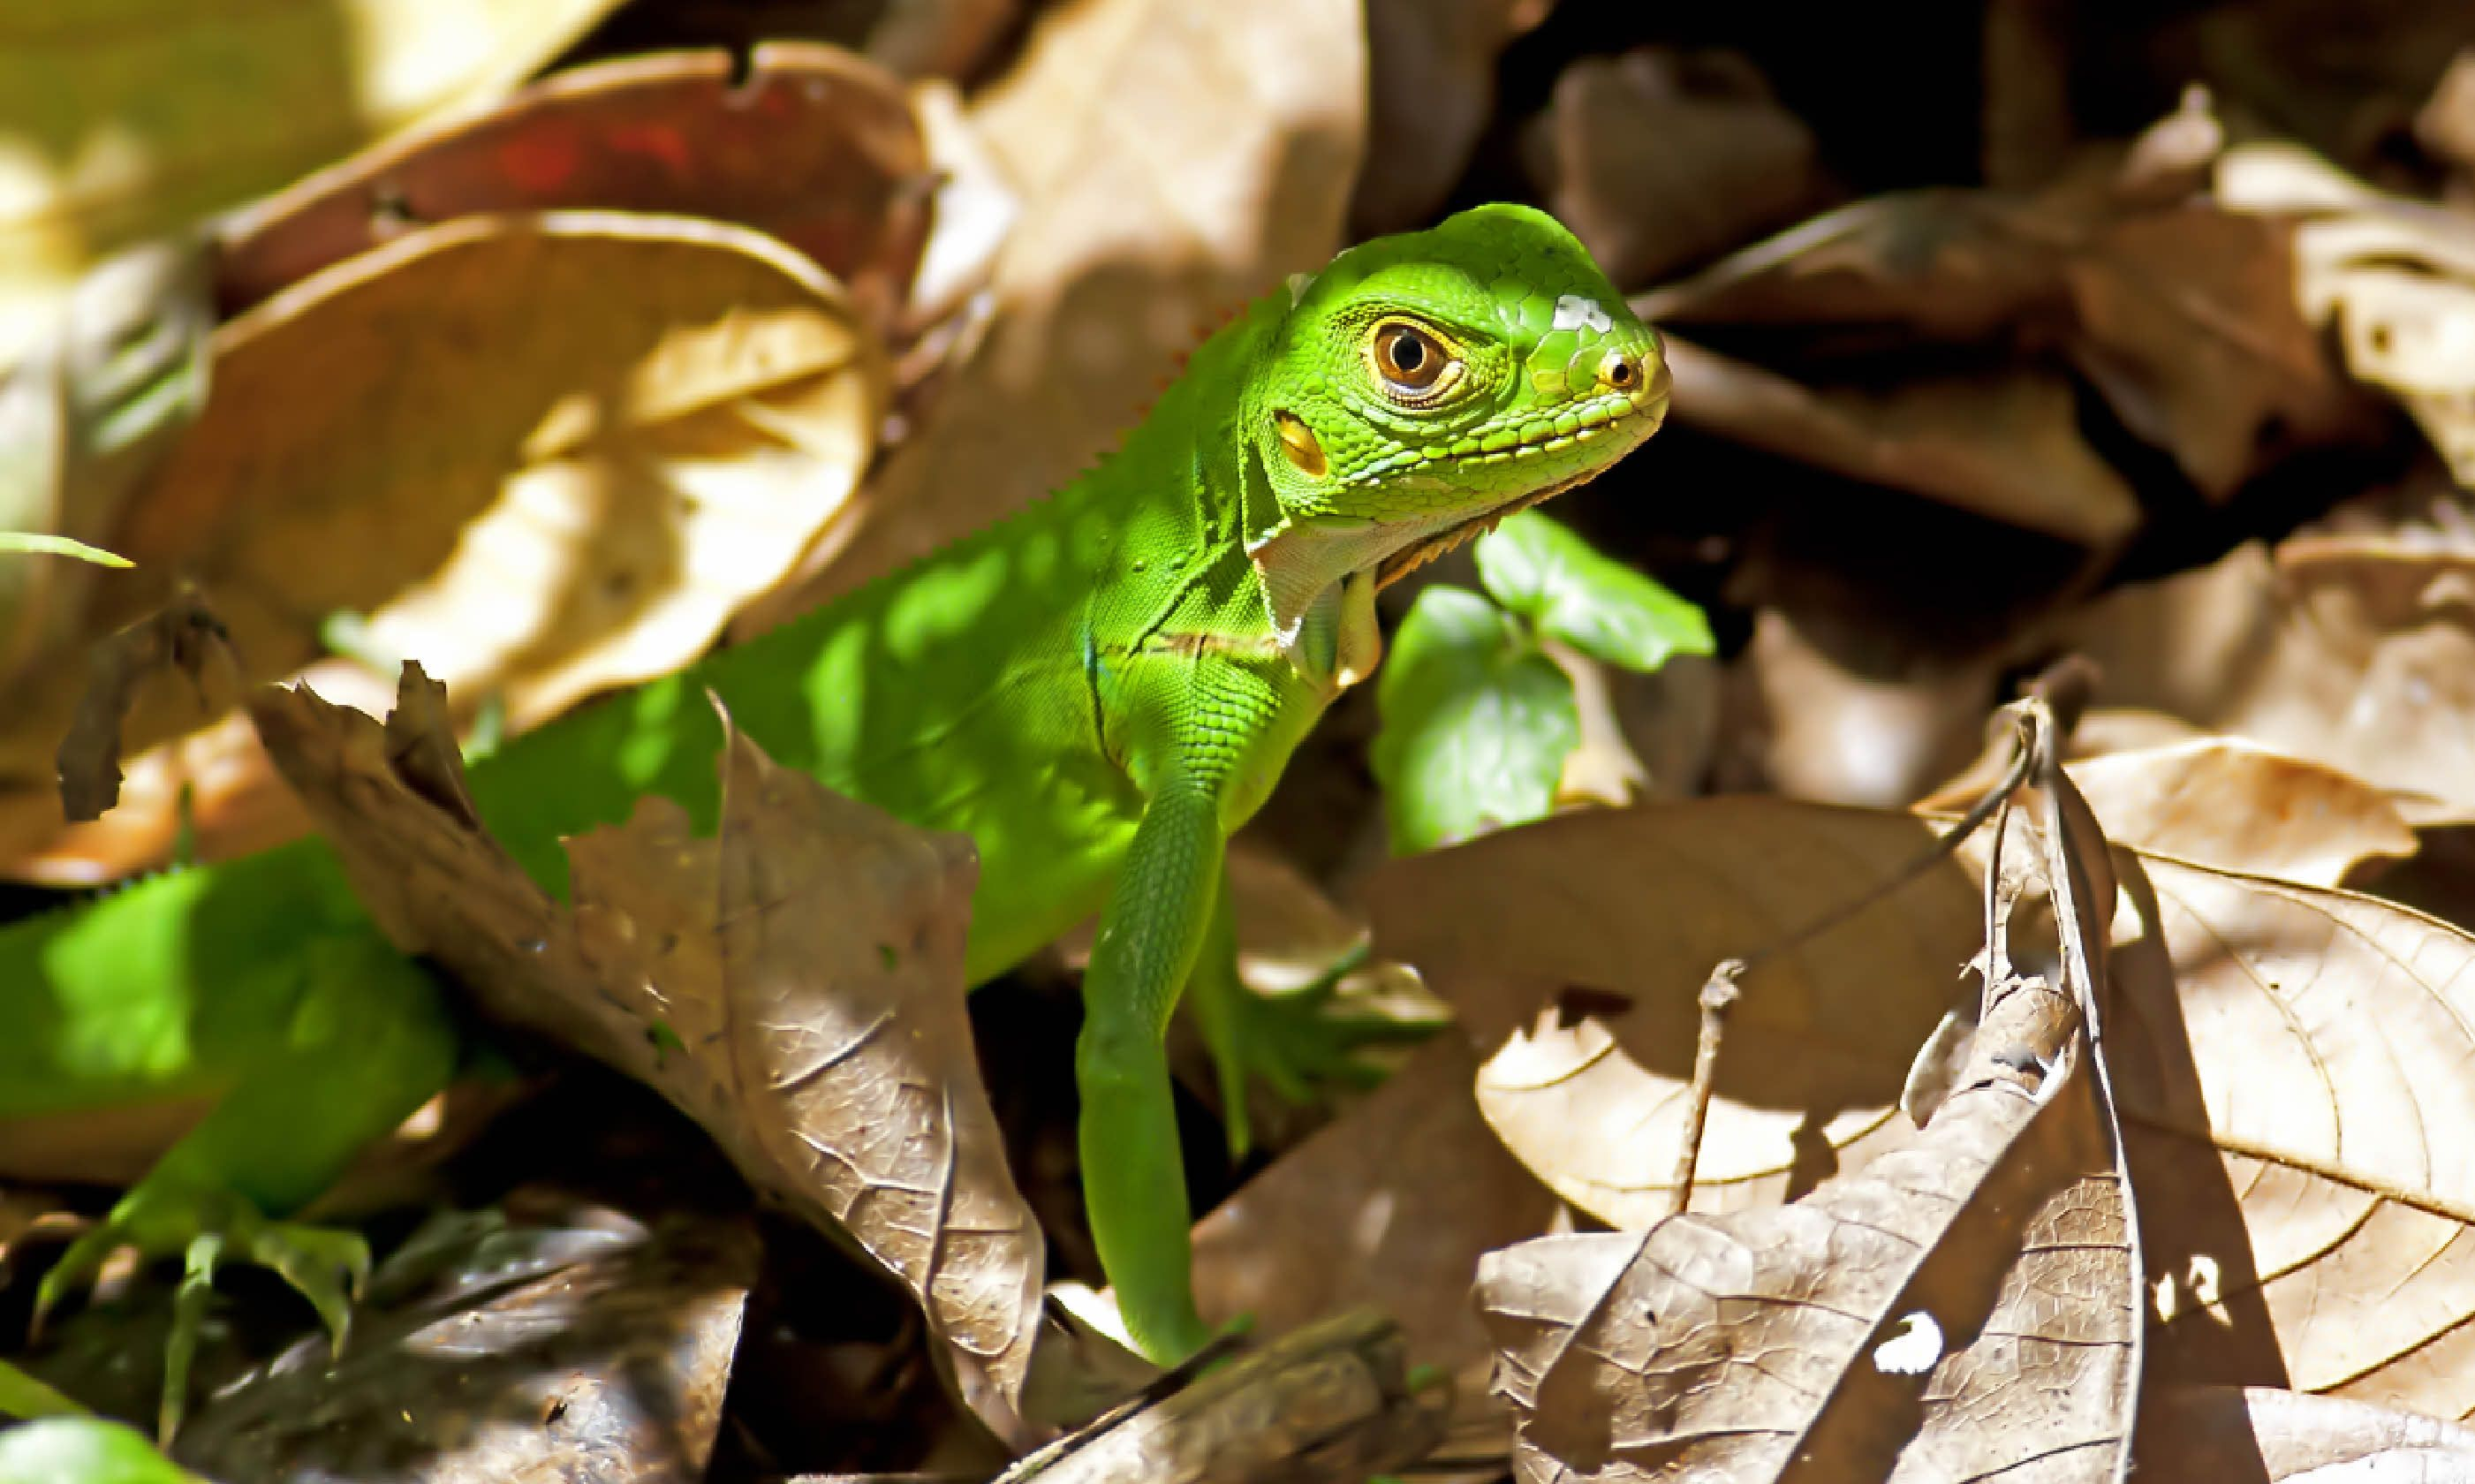 Juvenile green Iguana in Manuel Antonio National Park (Shutterstock)